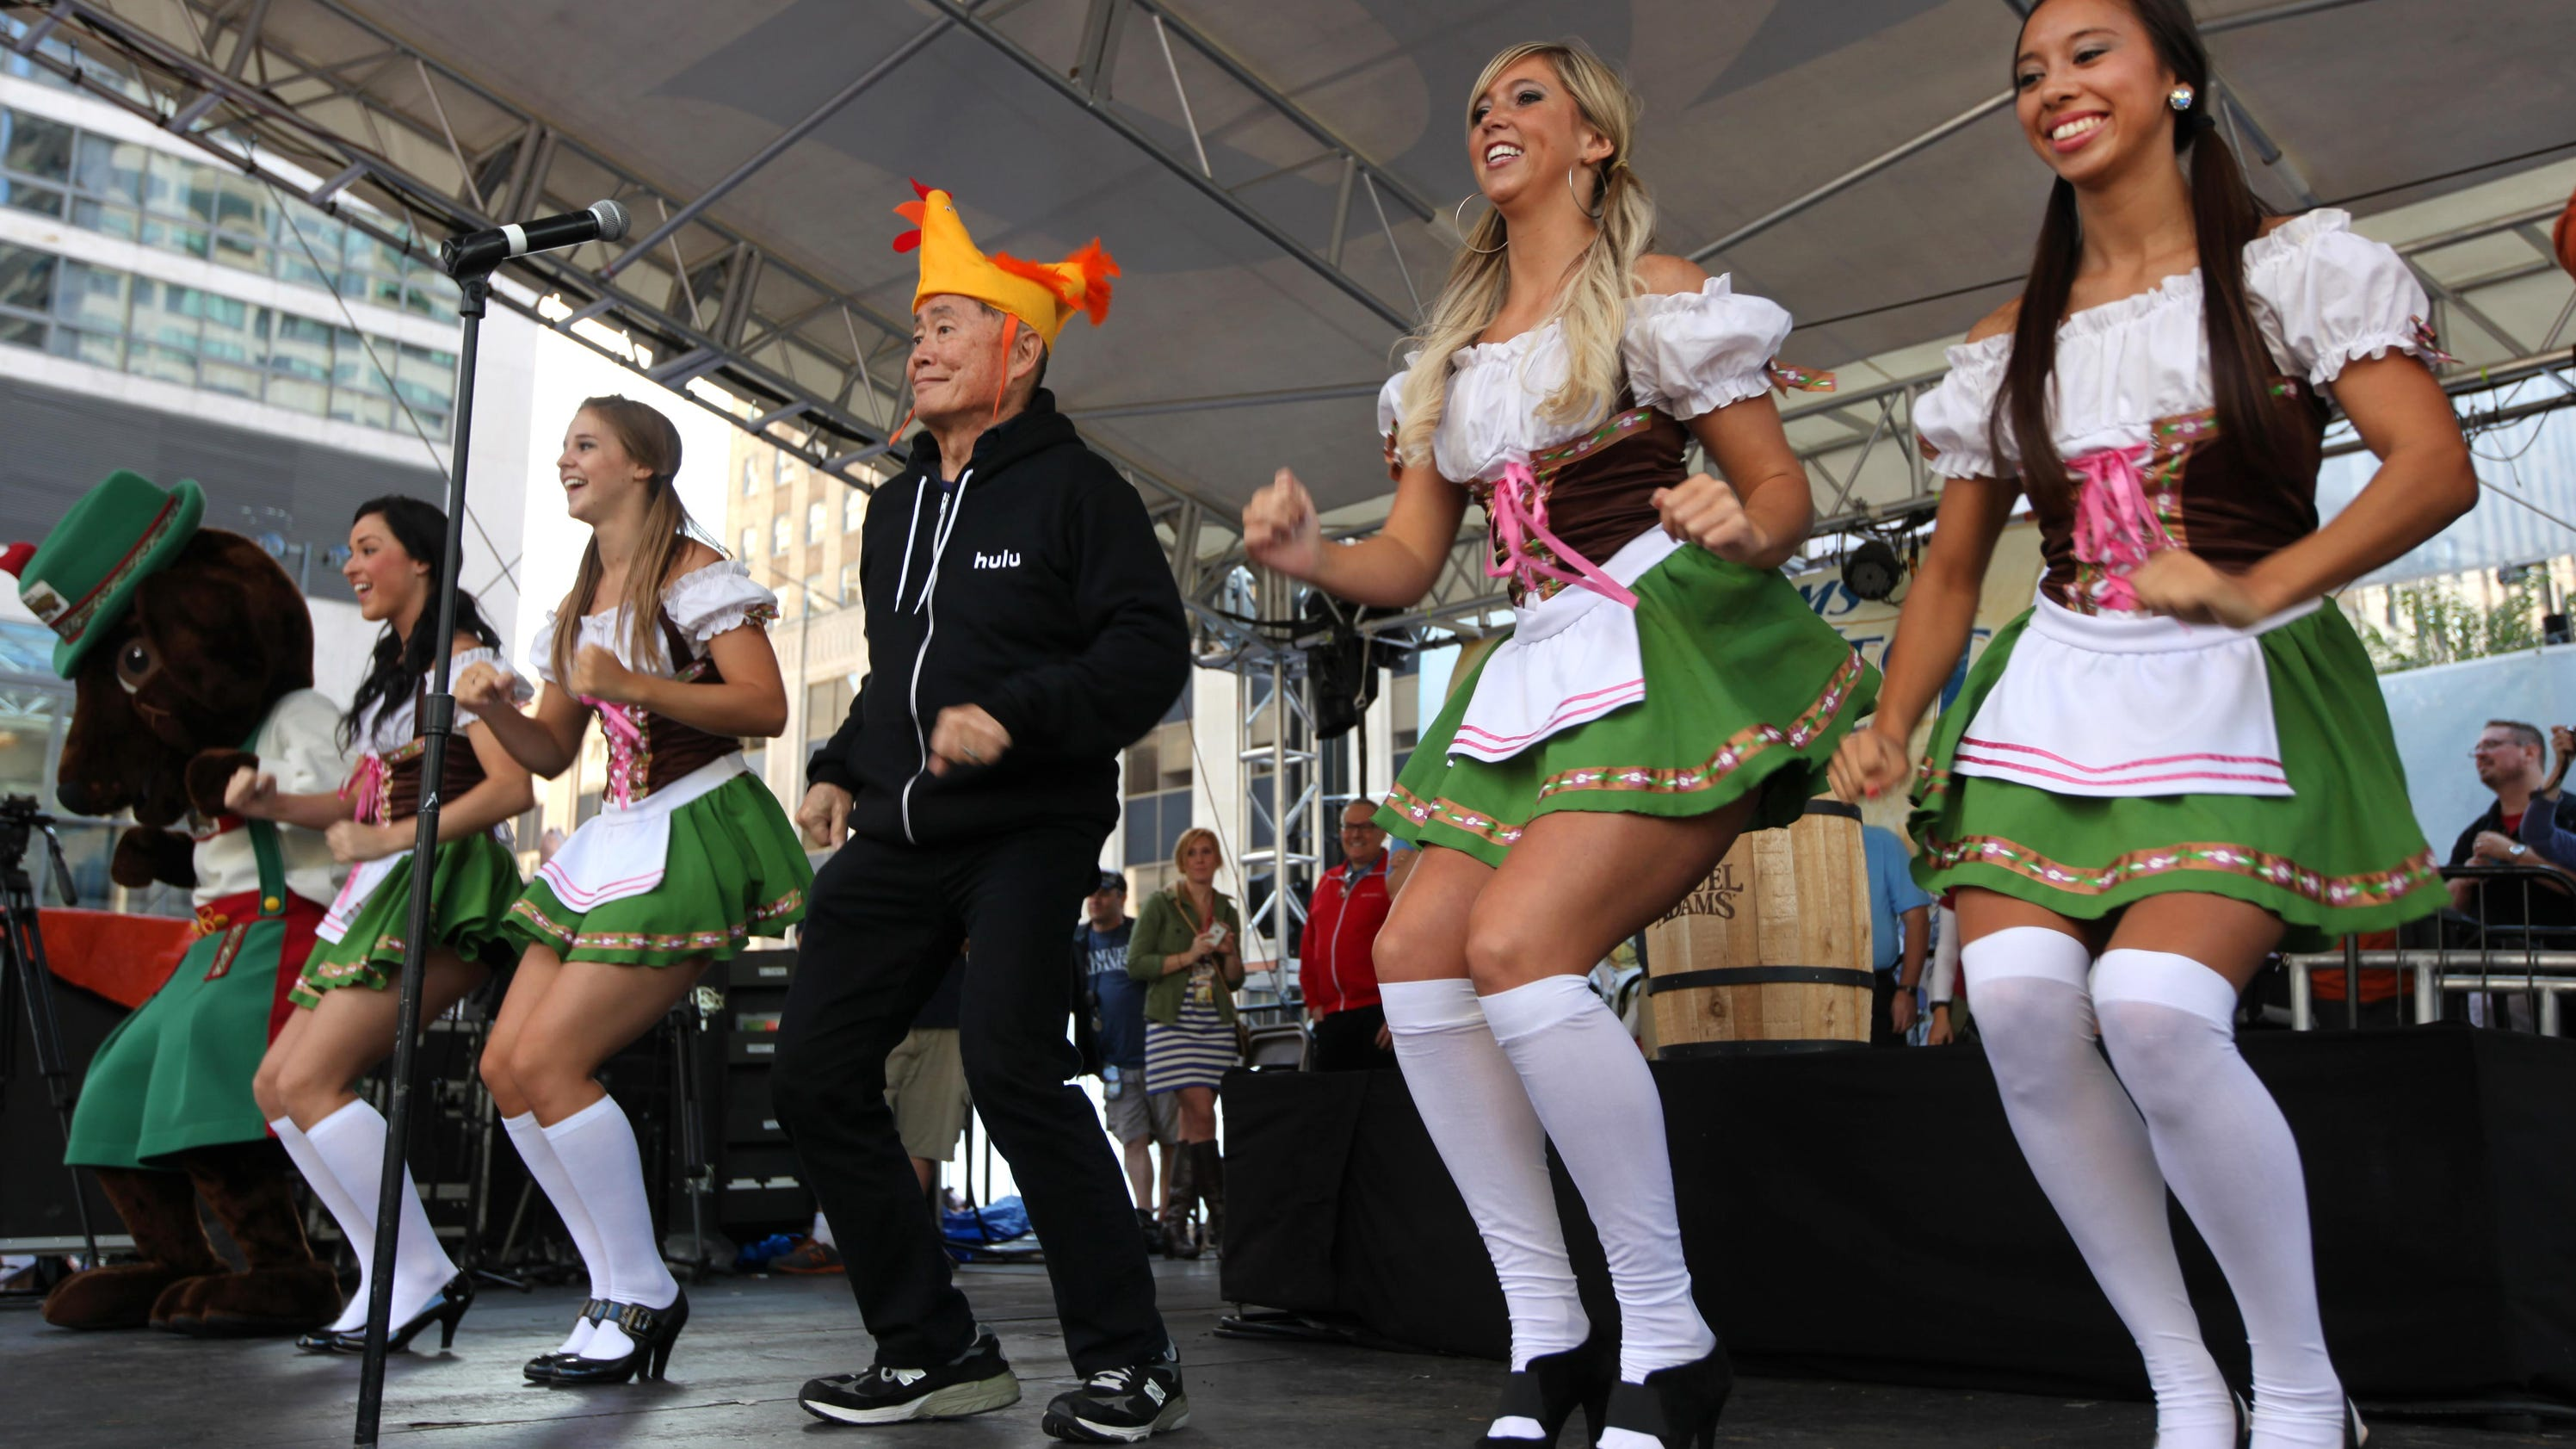 Oktoberfest Zinzinnati kicks off at CVG